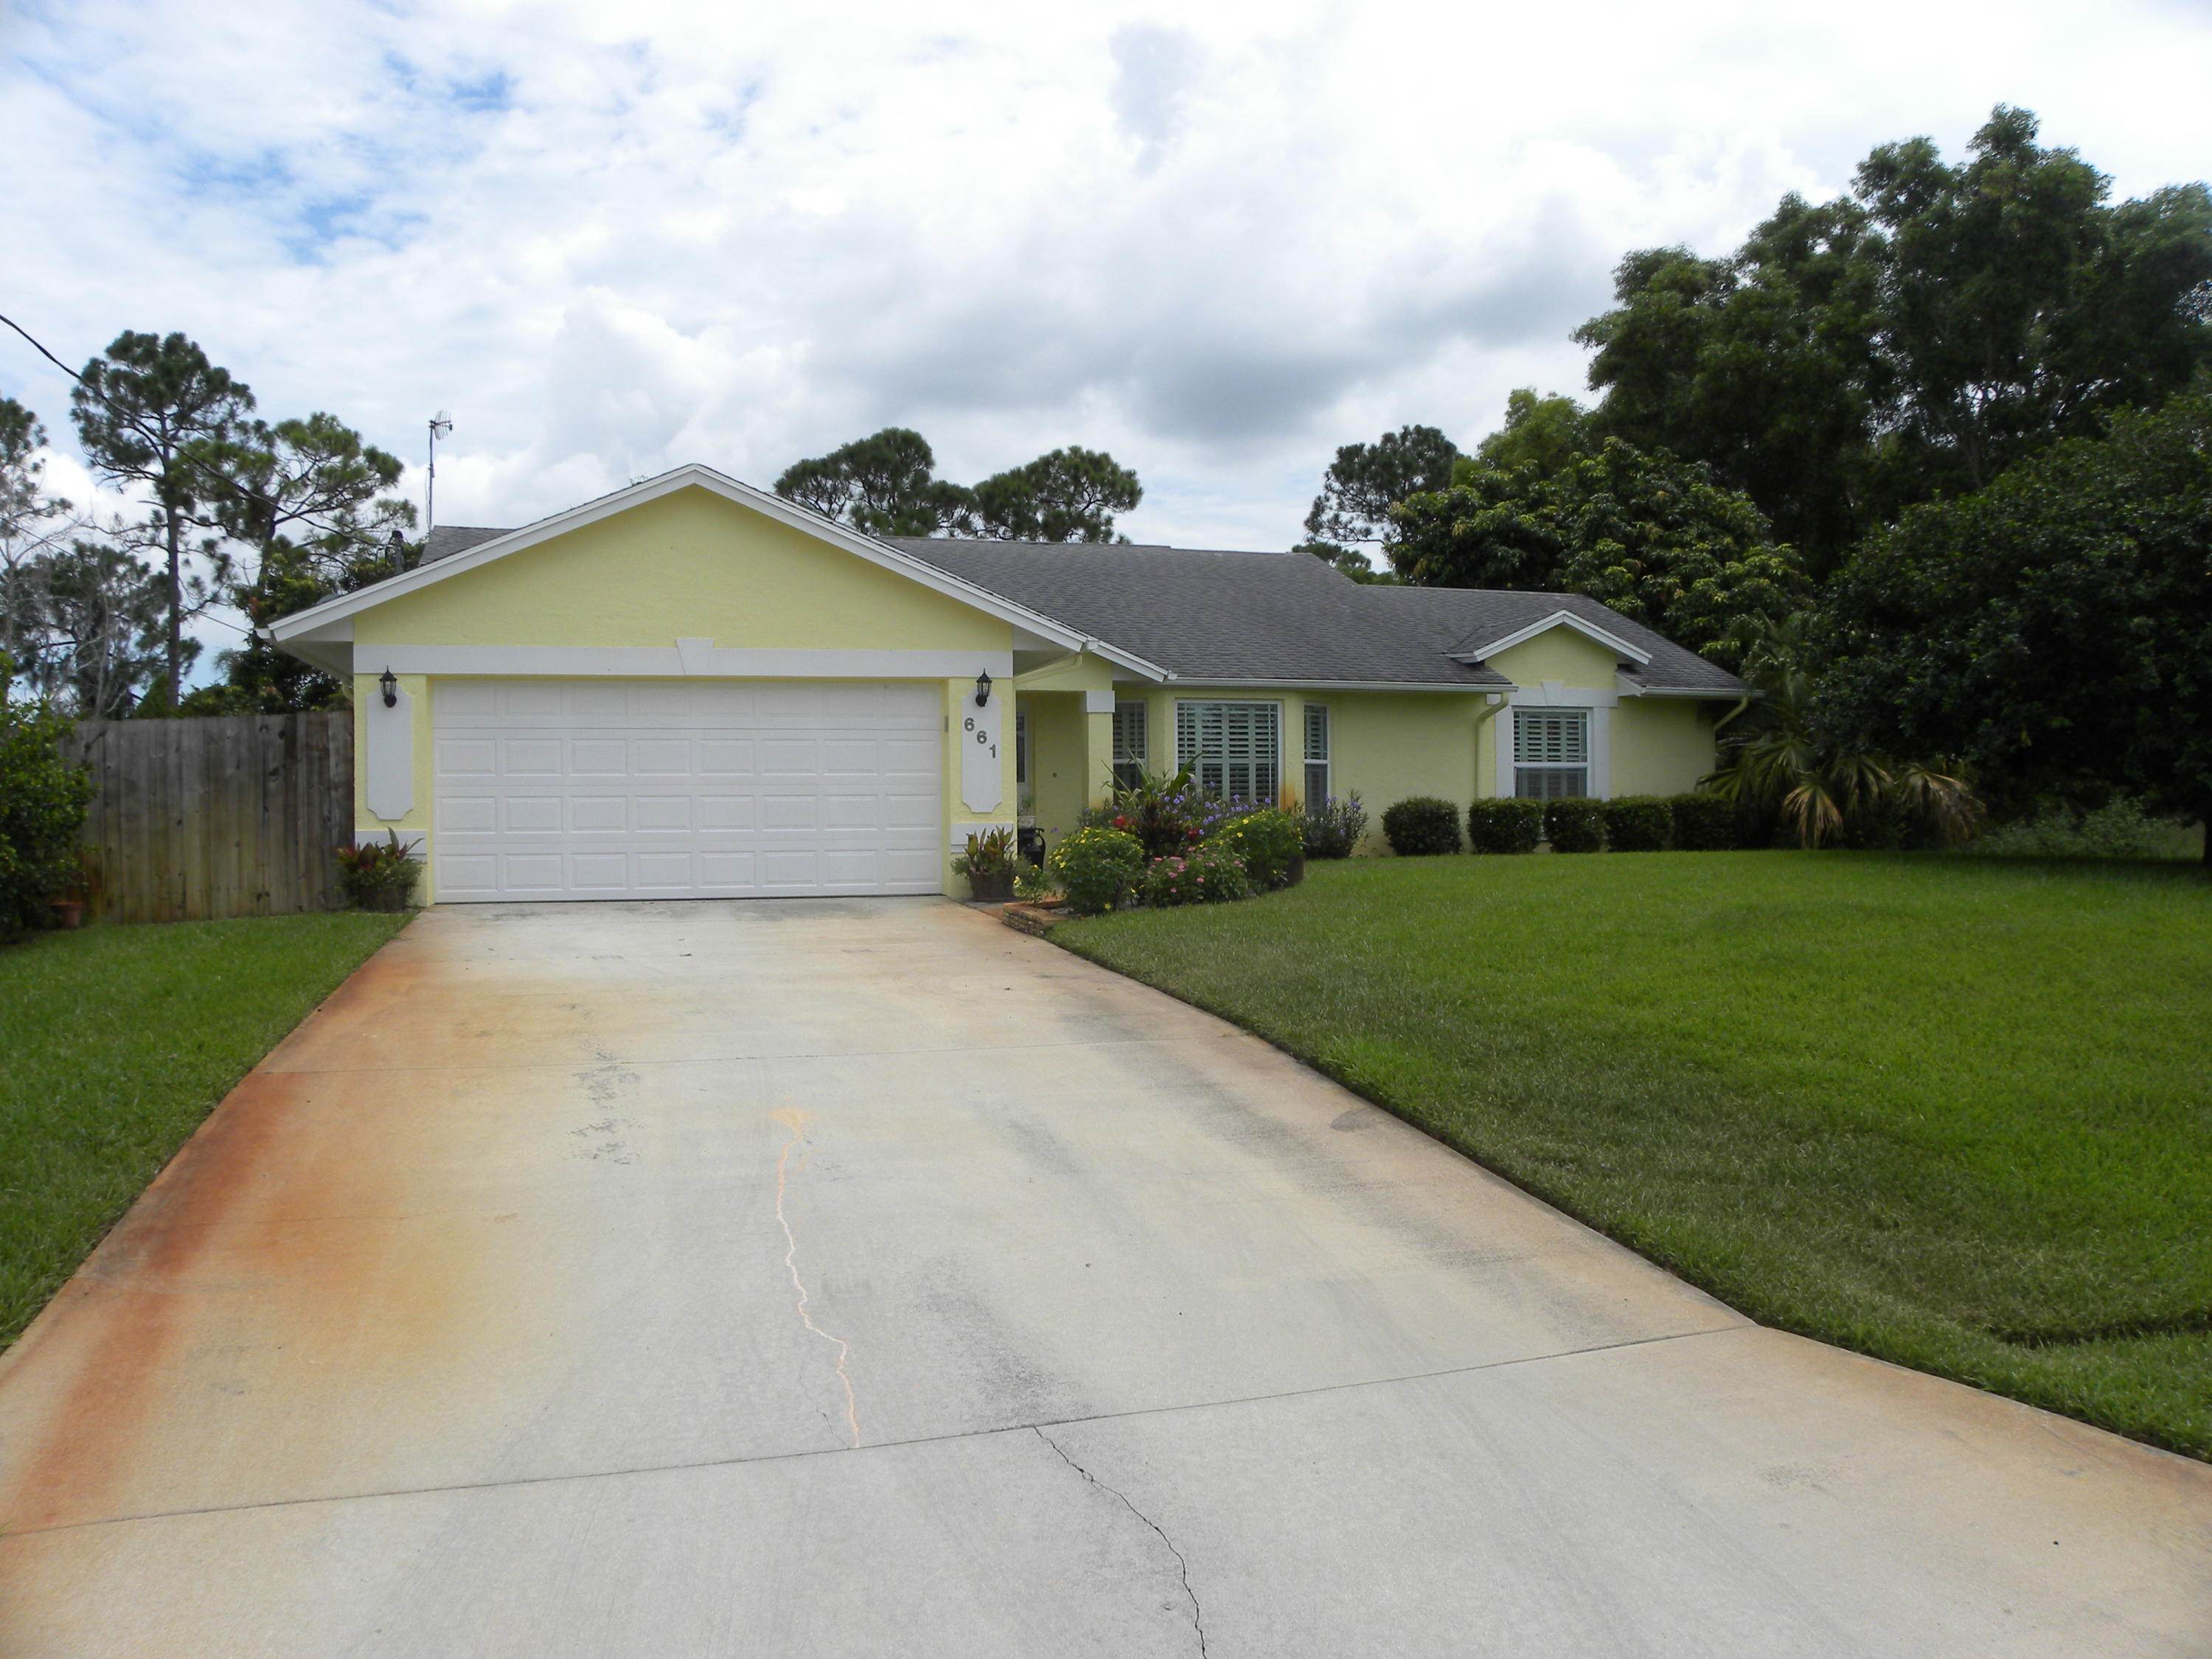 661 SE Delancey Lane, Port Saint Lucie, Florida